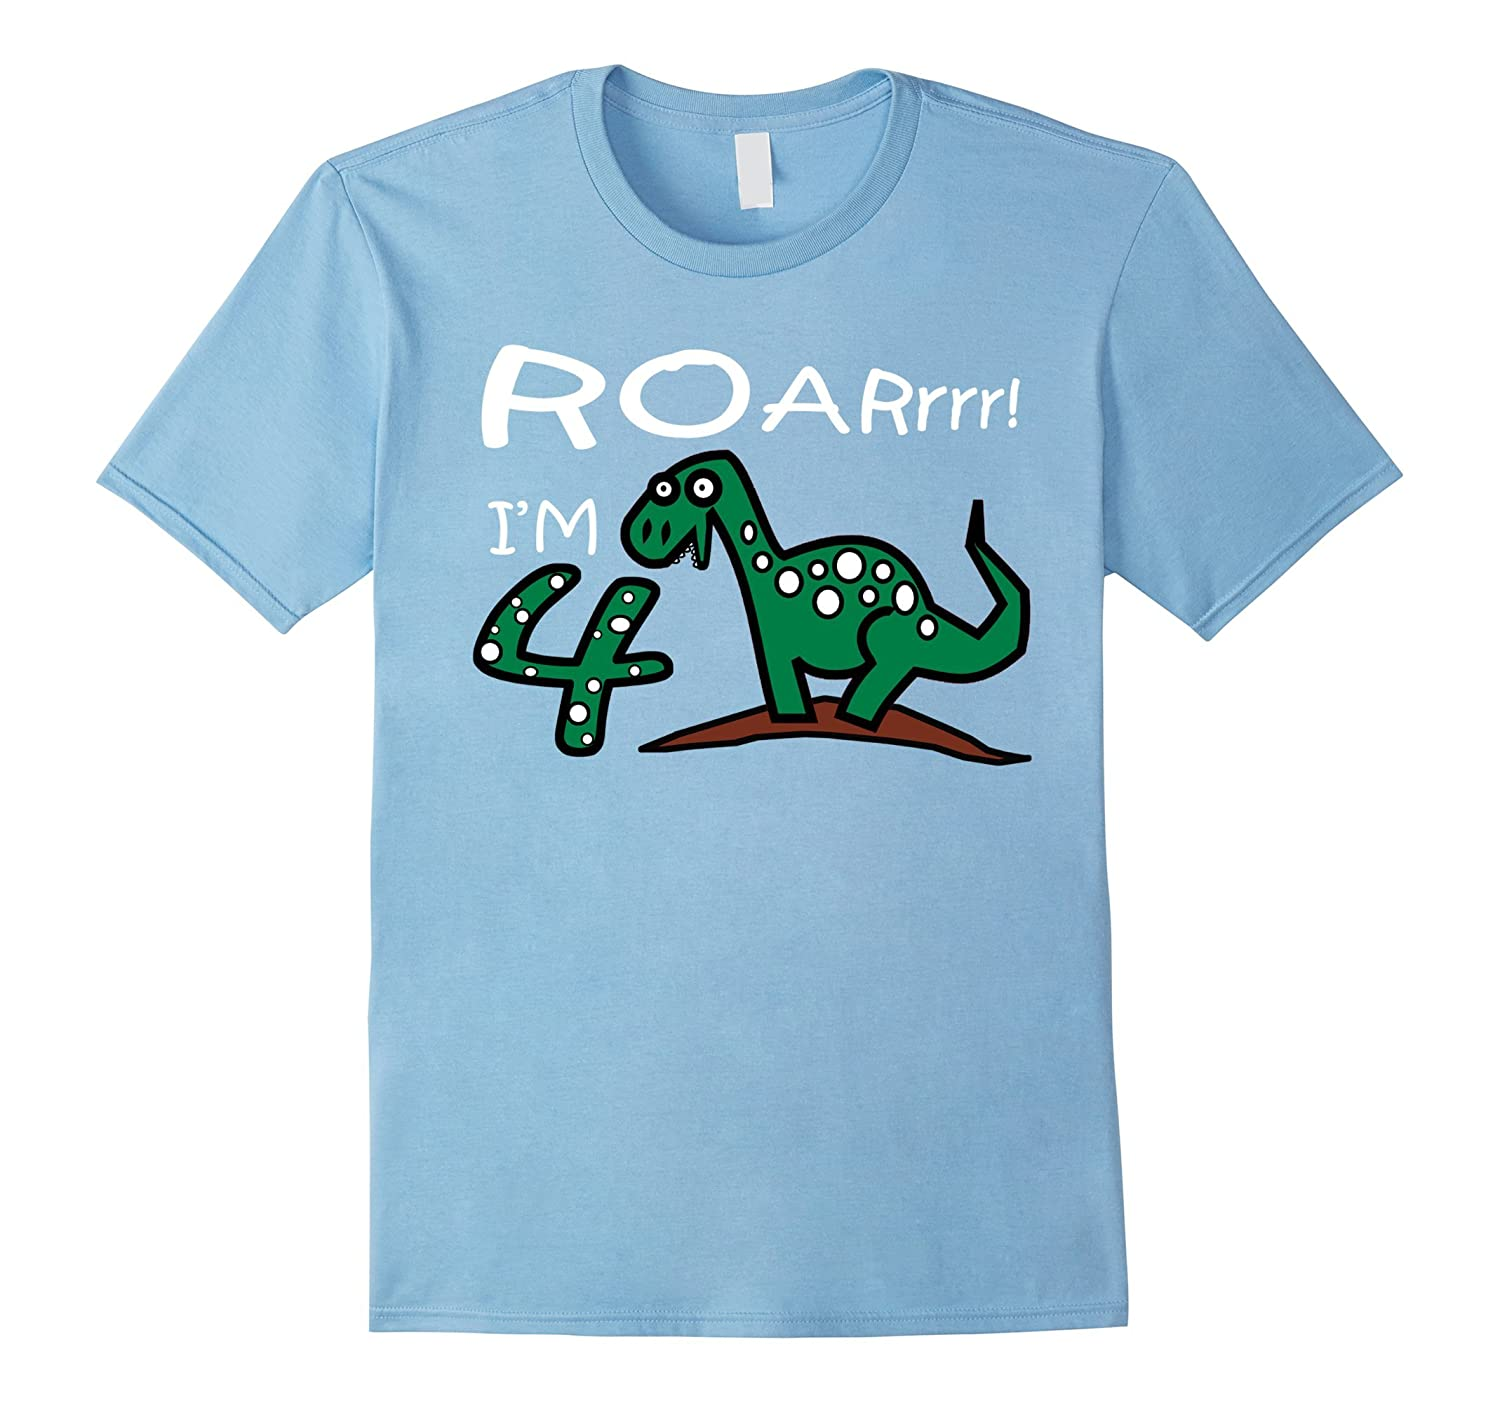 098b7a54 Kids 4 Year Old Boy Birthday Gift Cute Dinosaur shirt-Vaci – Vaciuk